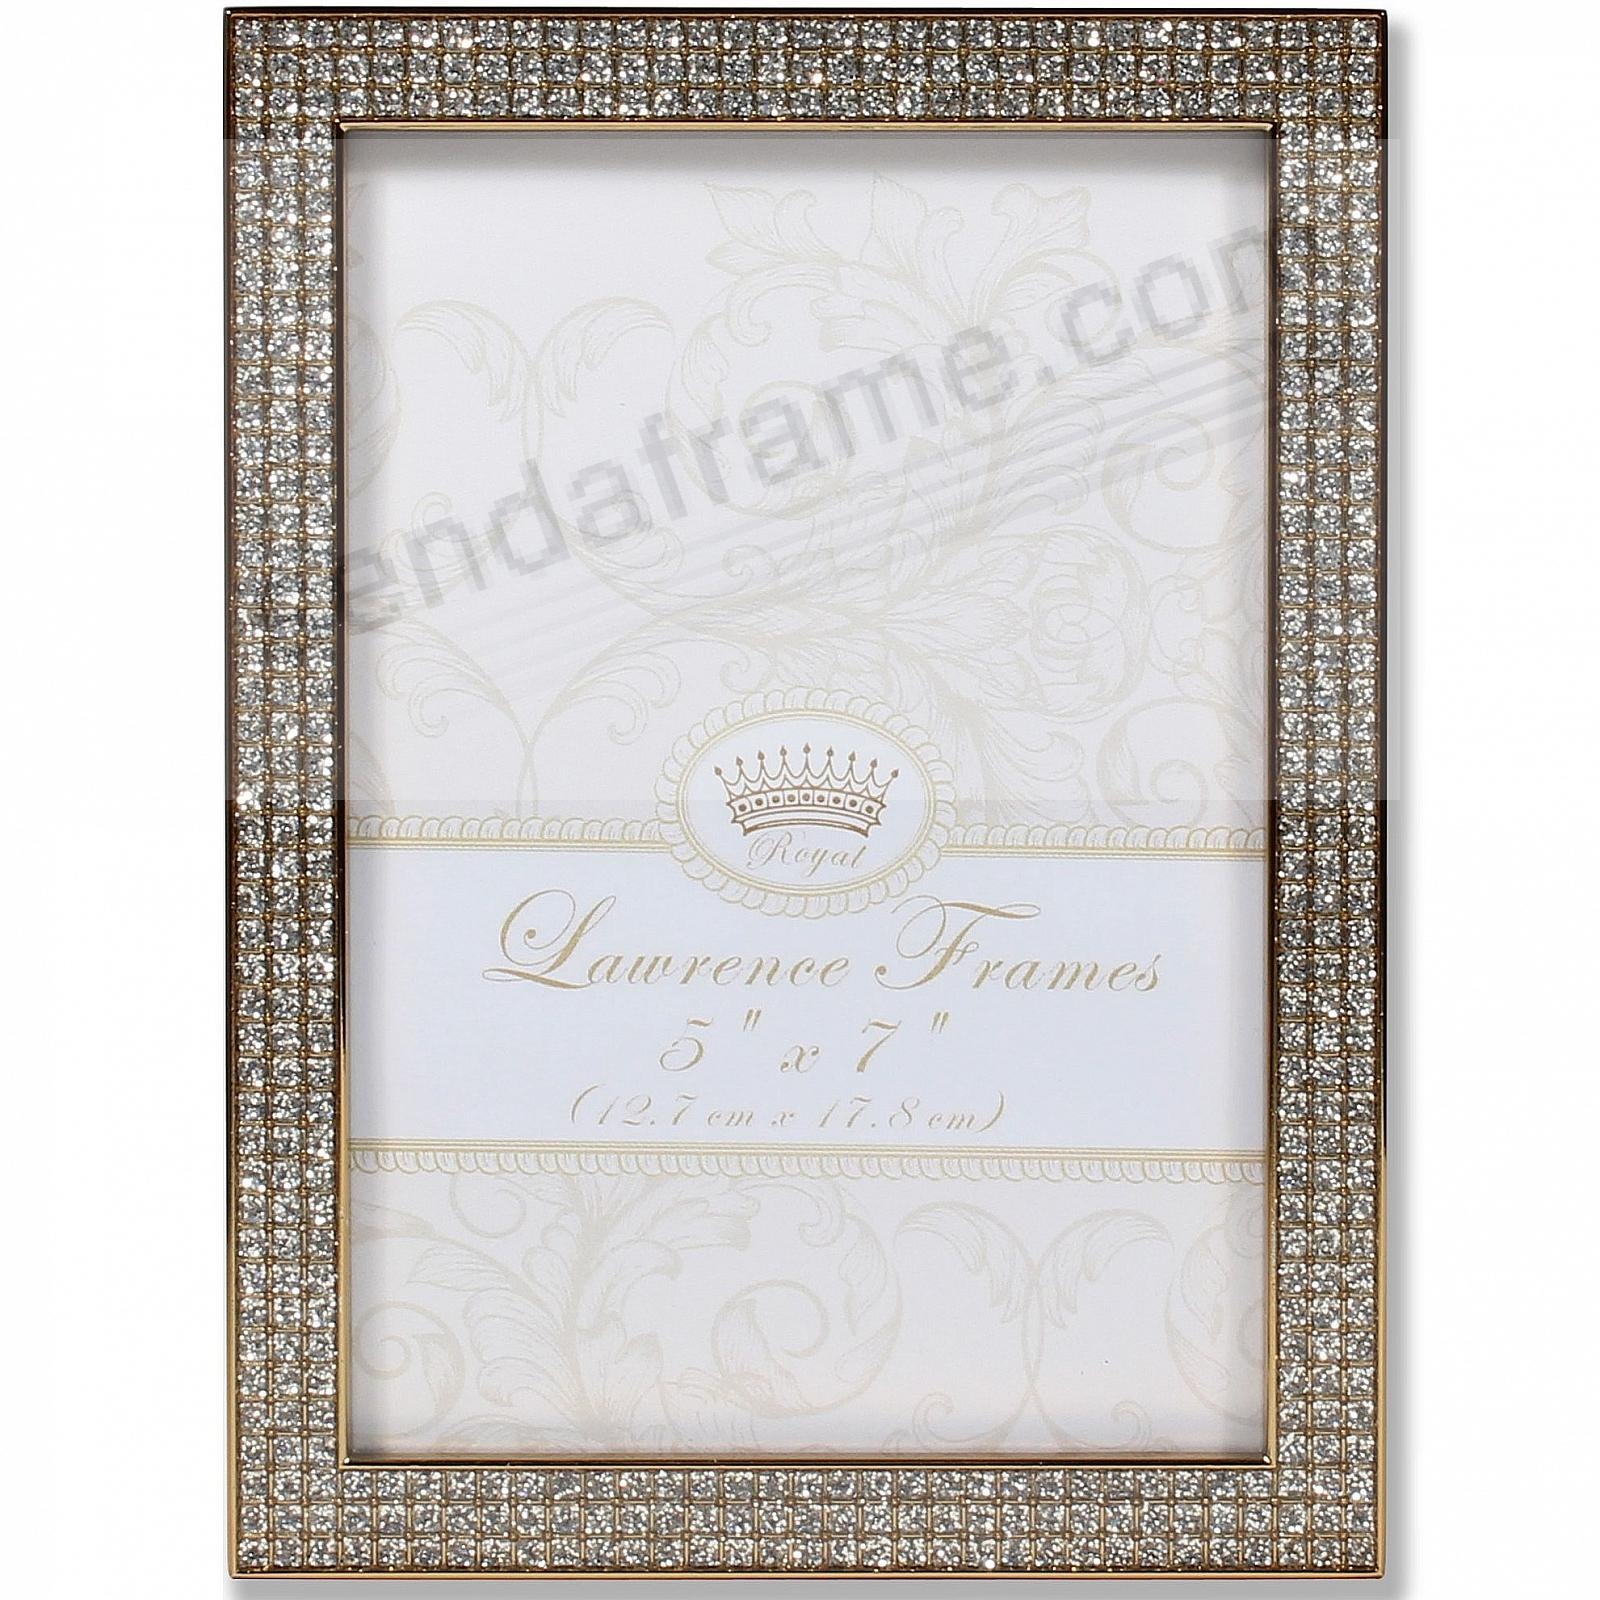 WHITE JEWELS GOLD/Crystal 5x7 frame - Picture Frames, Photo Albums ...